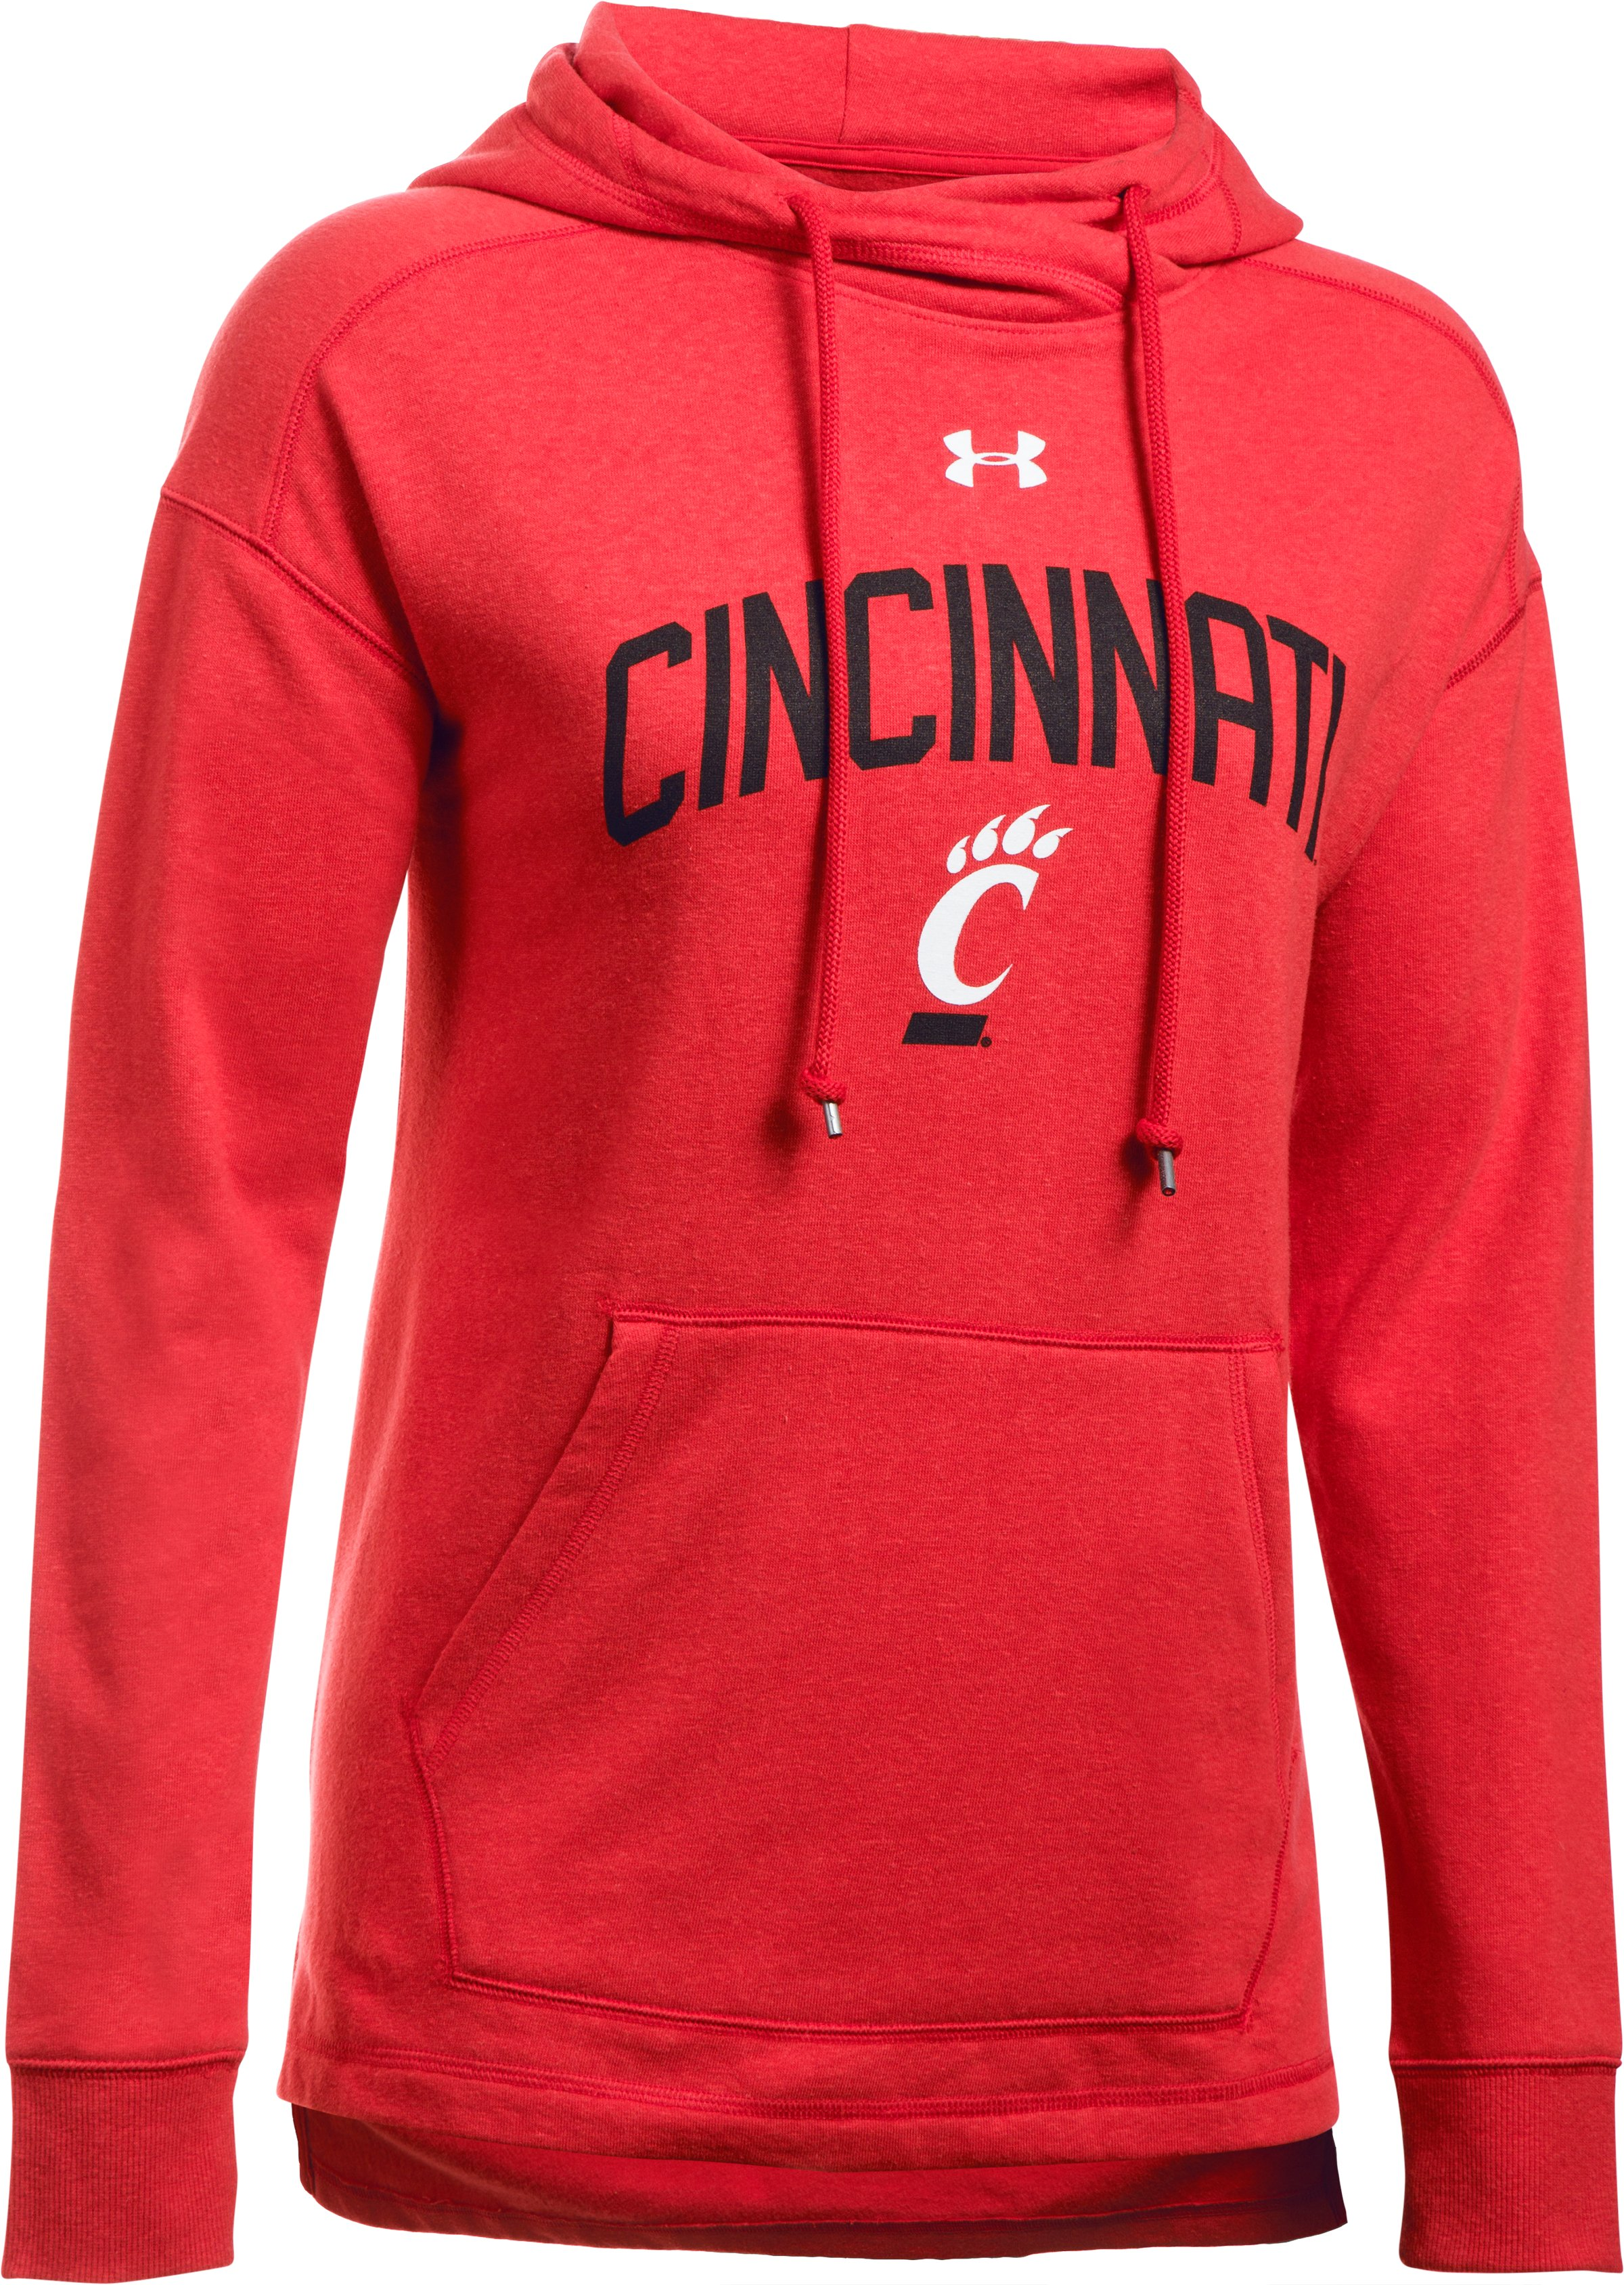 Women's Cincinnati UA Tri-Blend Hoodie, Red,